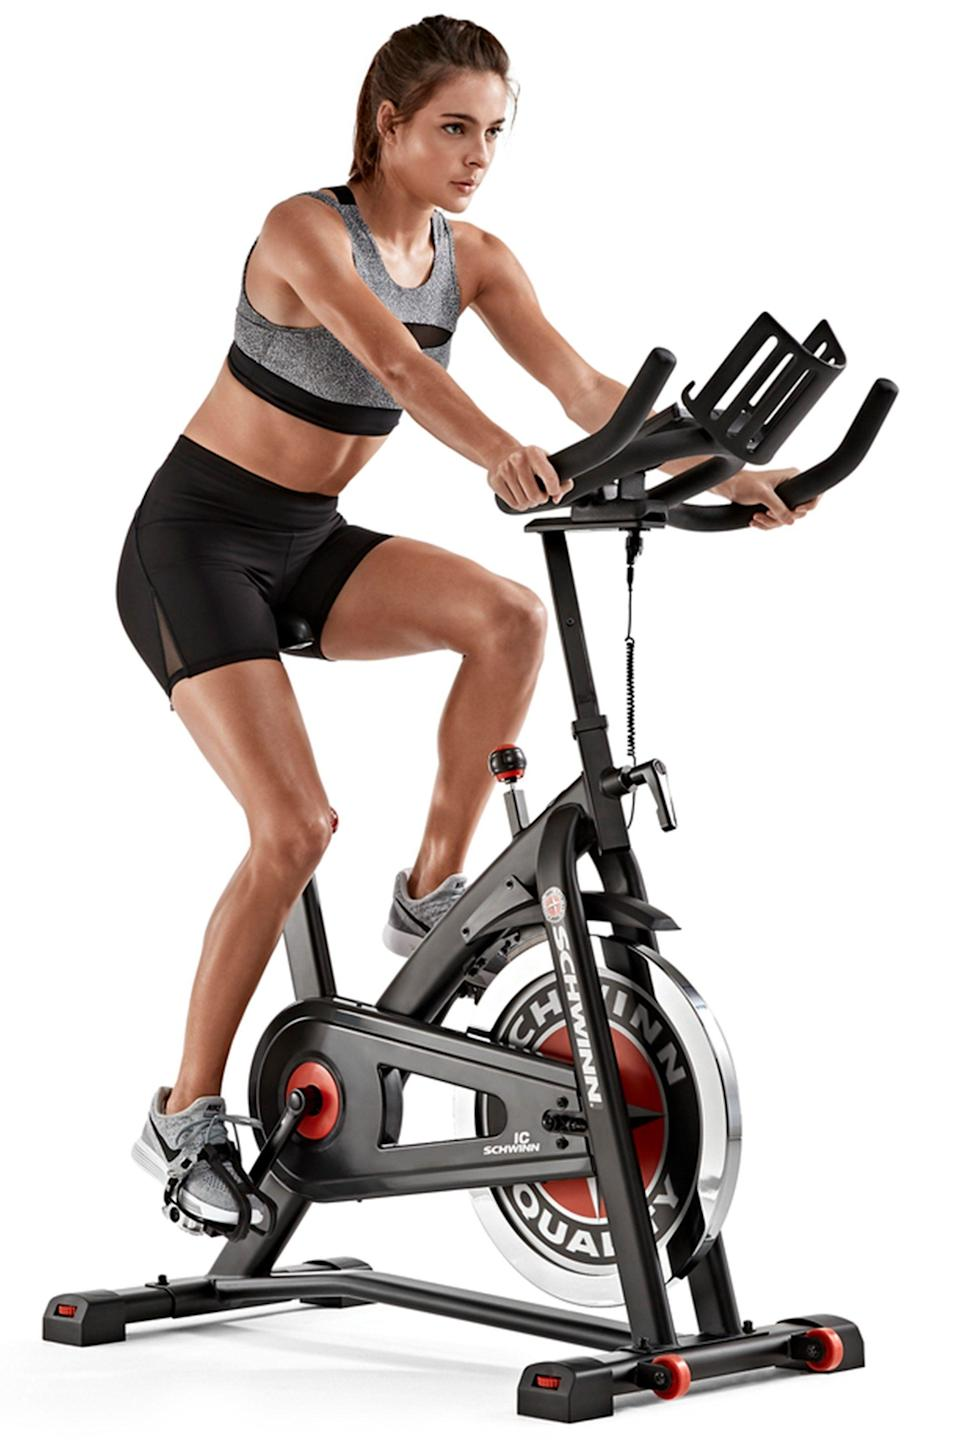 """<p><strong>Schwinn</strong></p><p>walmart.com</p><p><strong>$649.00</strong></p><p><a href=""""https://go.redirectingat.com?id=74968X1596630&url=https%3A%2F%2Fwww.walmart.com%2Fip%2F183731475%3Fselected%3Dtrue&sref=https%3A%2F%2Fwww.womenshealthmag.com%2Ffitness%2Fg37679339%2Fwalmart-indoor-exercise-bike-sale%2F"""" rel=""""nofollow noopener"""" target=""""_blank"""" data-ylk=""""slk:Shop Now"""" class=""""link rapid-noclick-resp"""">Shop Now</a></p><p>Bring your workout to the digital age with Schwinn's IC3 cycling bike. This simple, upright style is designed with a tablet holder, which allows you to easily follow workout programs through apps on your phone or iPad (or you can just scroll through TikTok—both work!).</p>"""